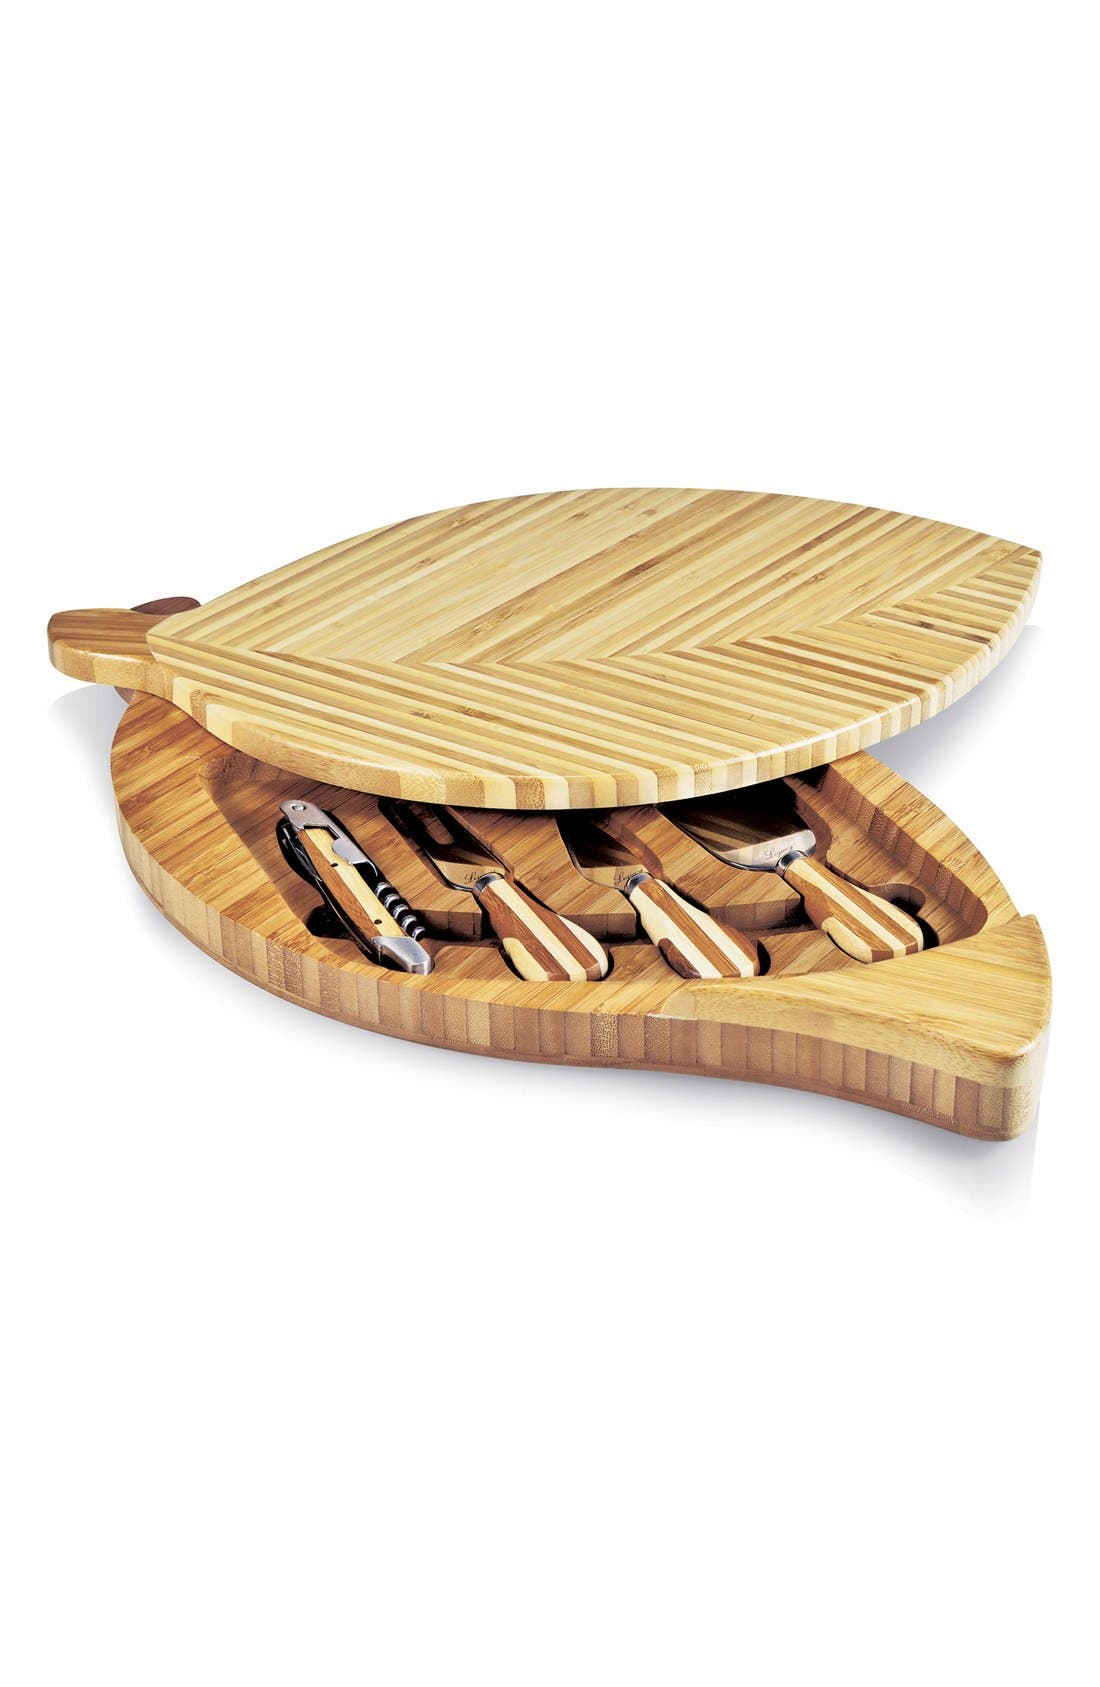 Main Image - Picnic Time 'Leaf' Cutting Board & Cheese Tools